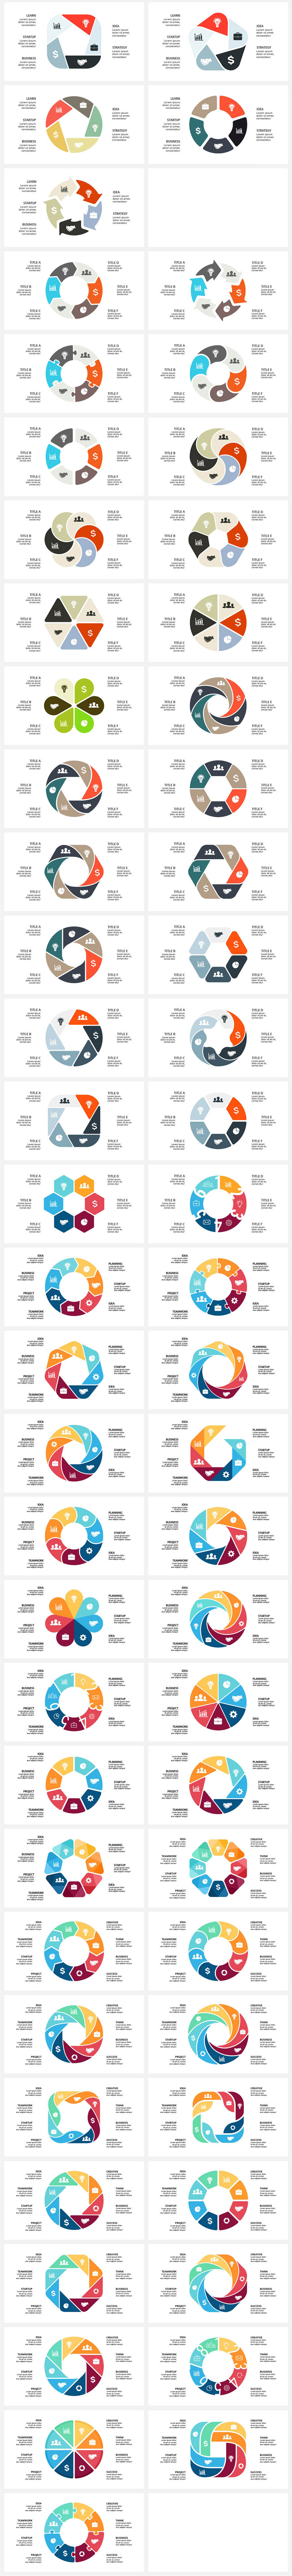 Cool Infographics in 2020. Best Infographics Bundle: 1500 items - $29 - 12 GEOMETRY Part 2